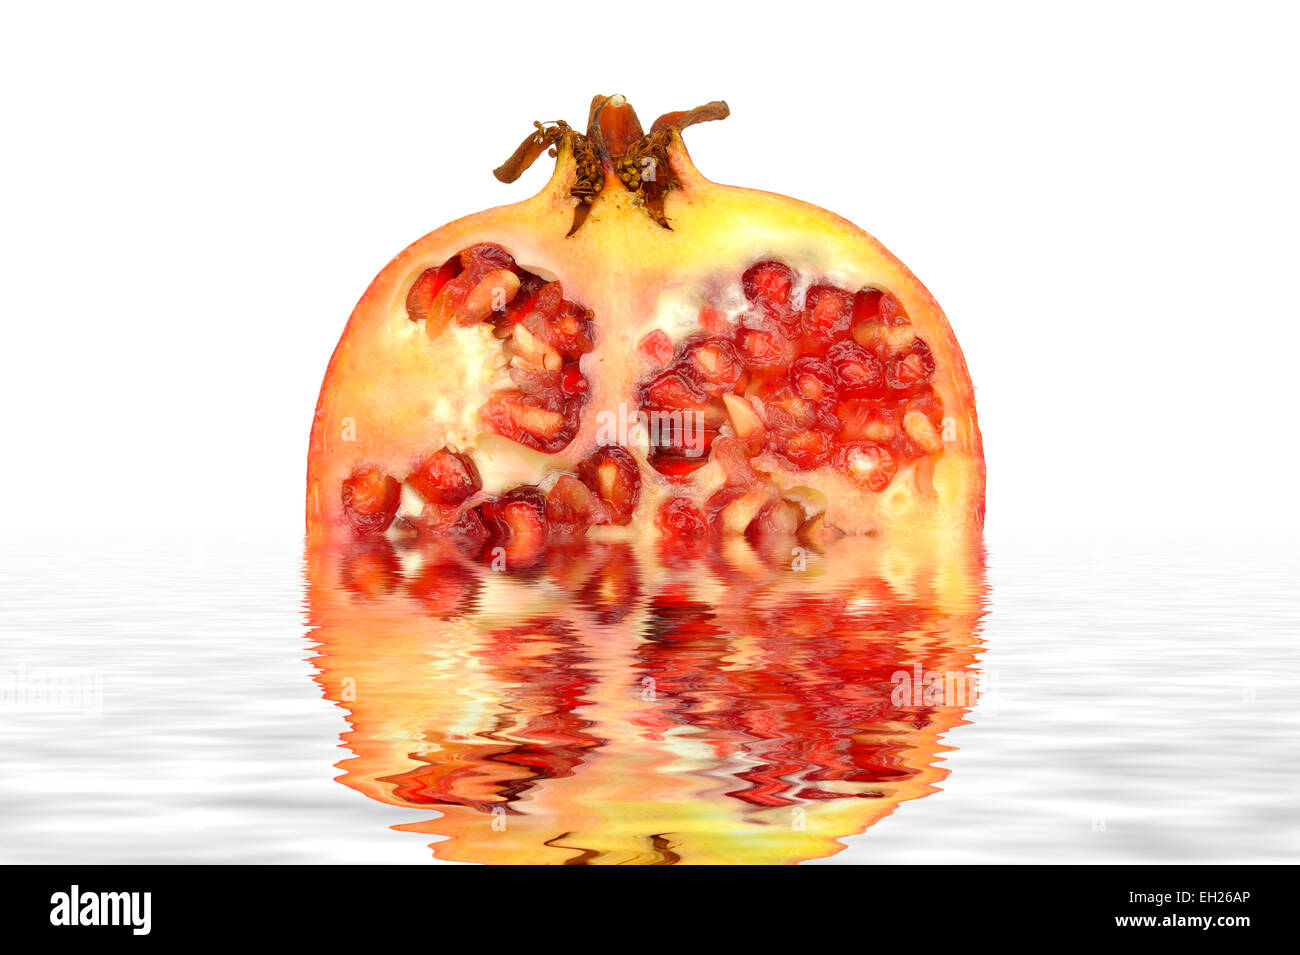 A Pomegranate digitally reflected in a pool of water - Stock Image